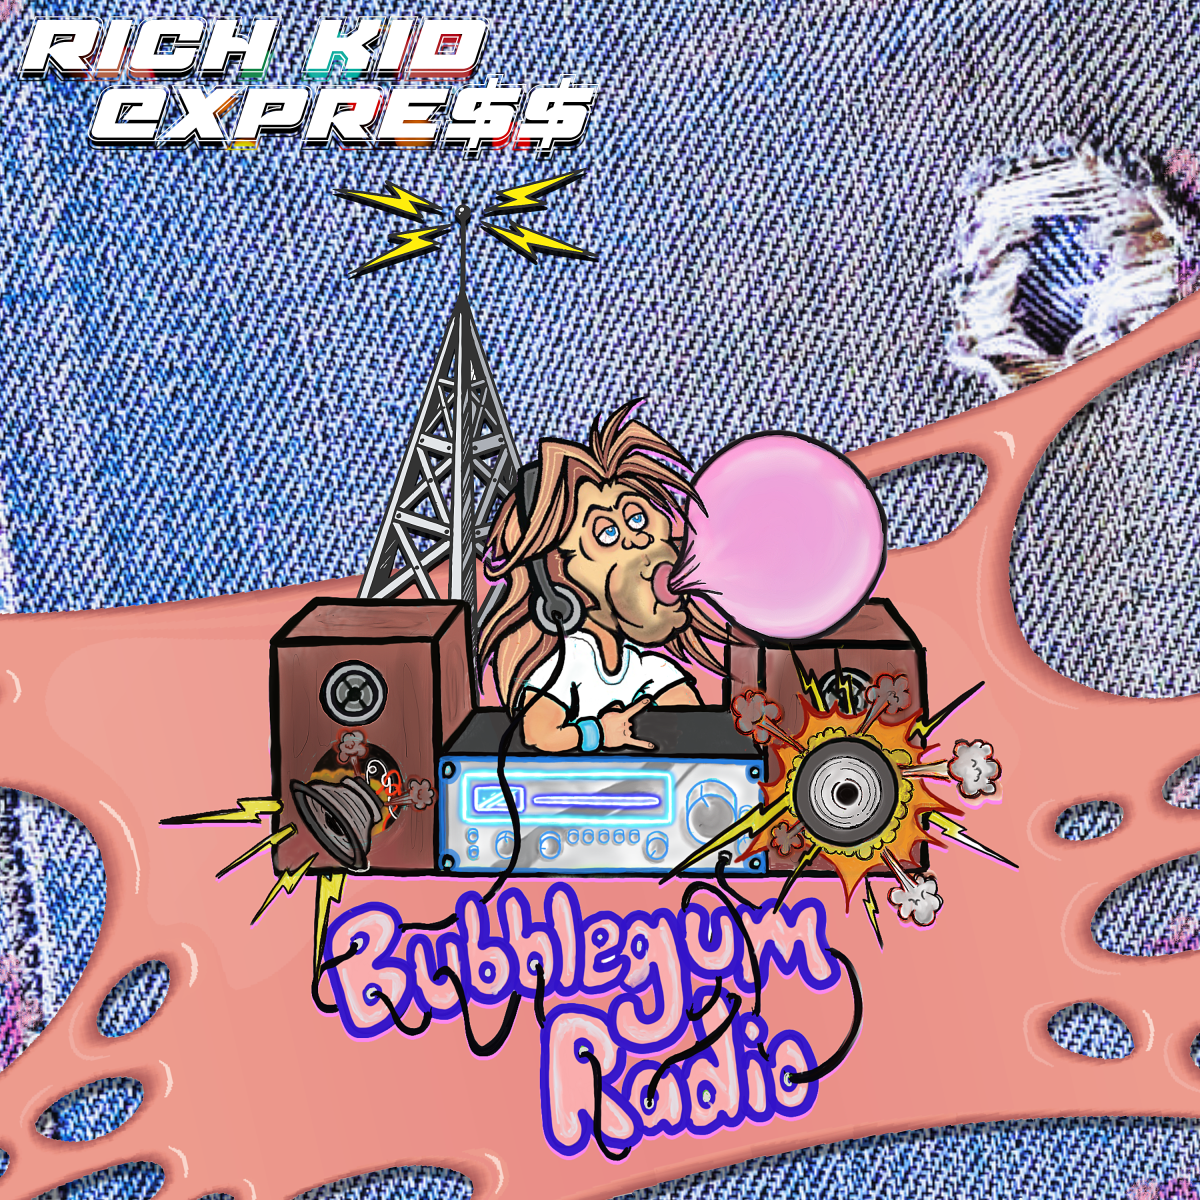 Rich Kid Express Remembers